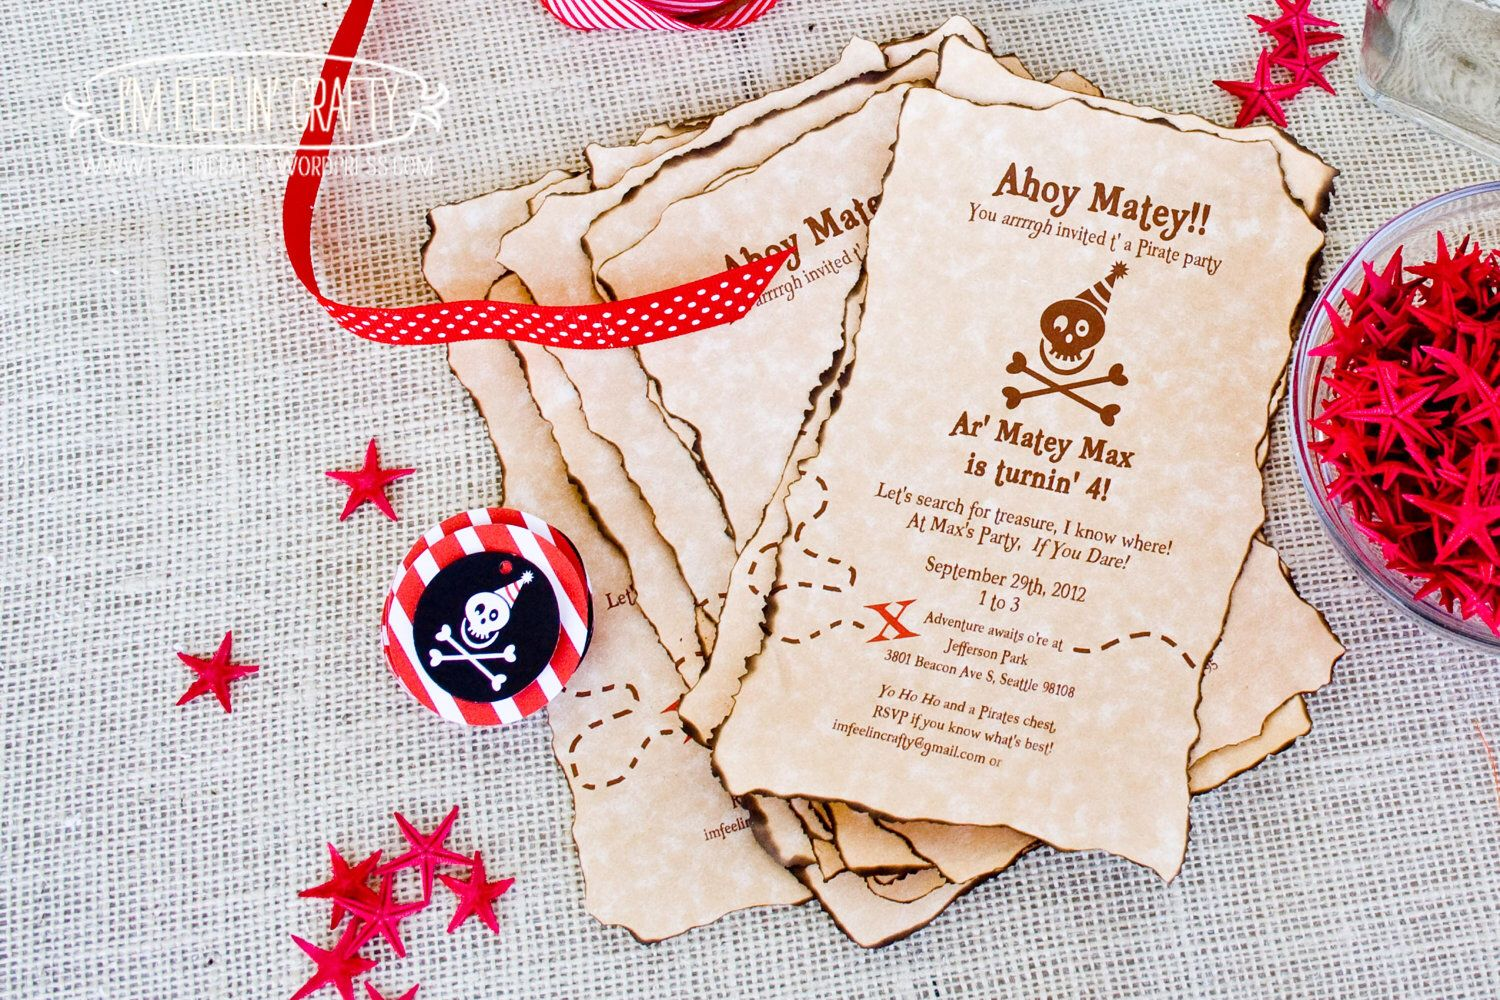 Pirate Party Invitations- Hand Burned- Set of 10 by imfeelincrafty on Etsy https://www.etsy.com/listing/115385267/pirate-party-invitations-hand-burned-set